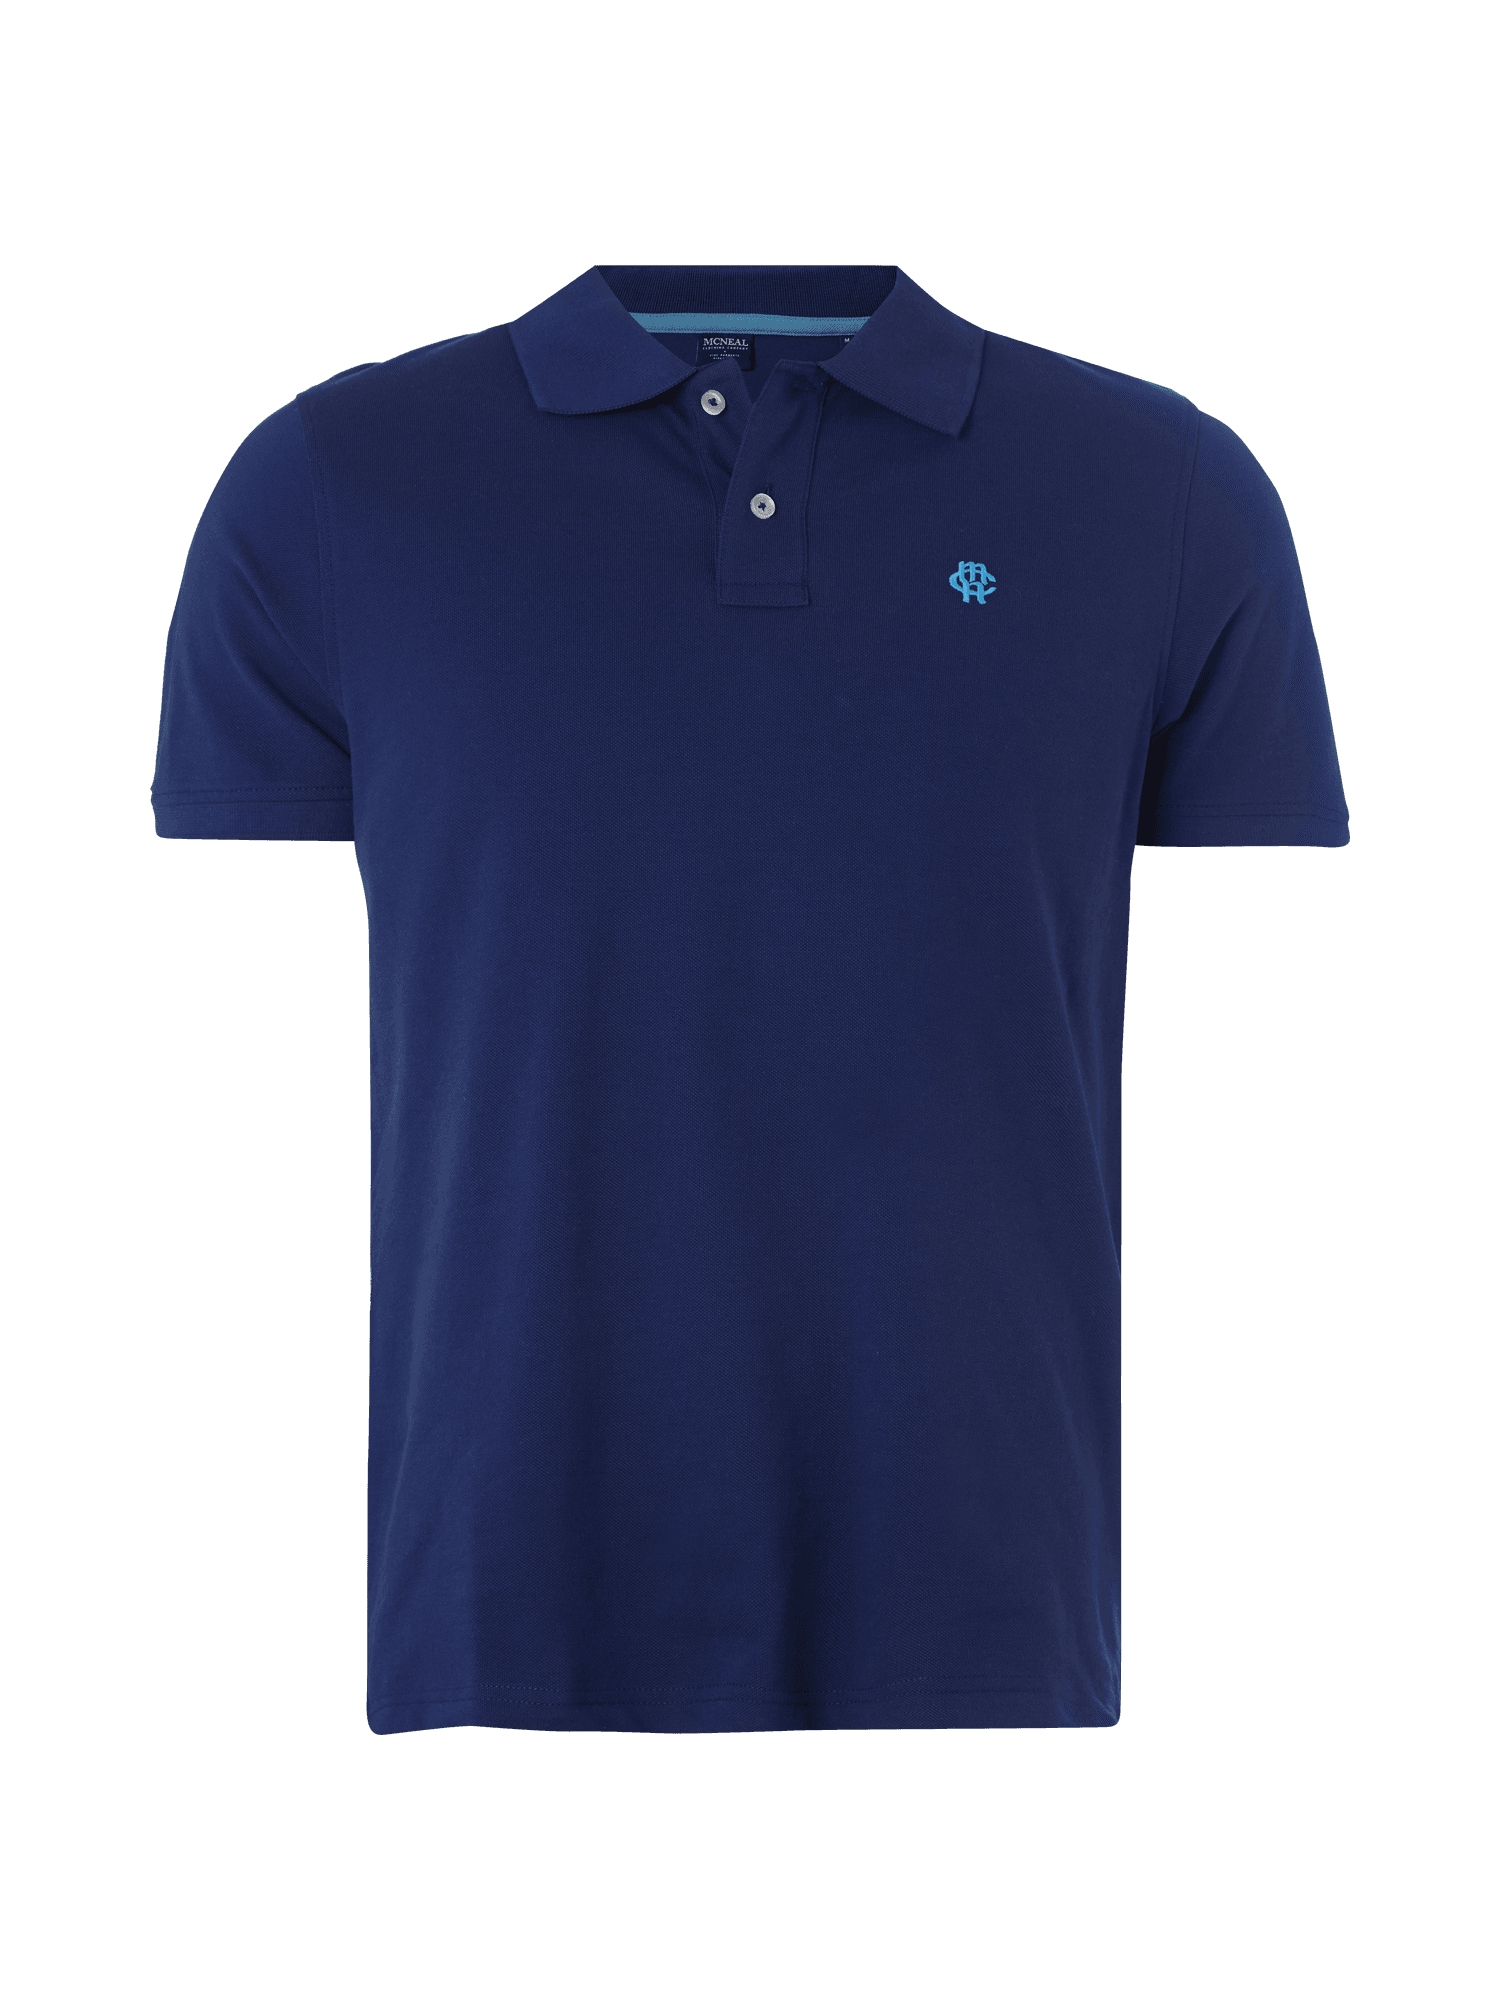 MCNEAL Polo homme. LupSJreC